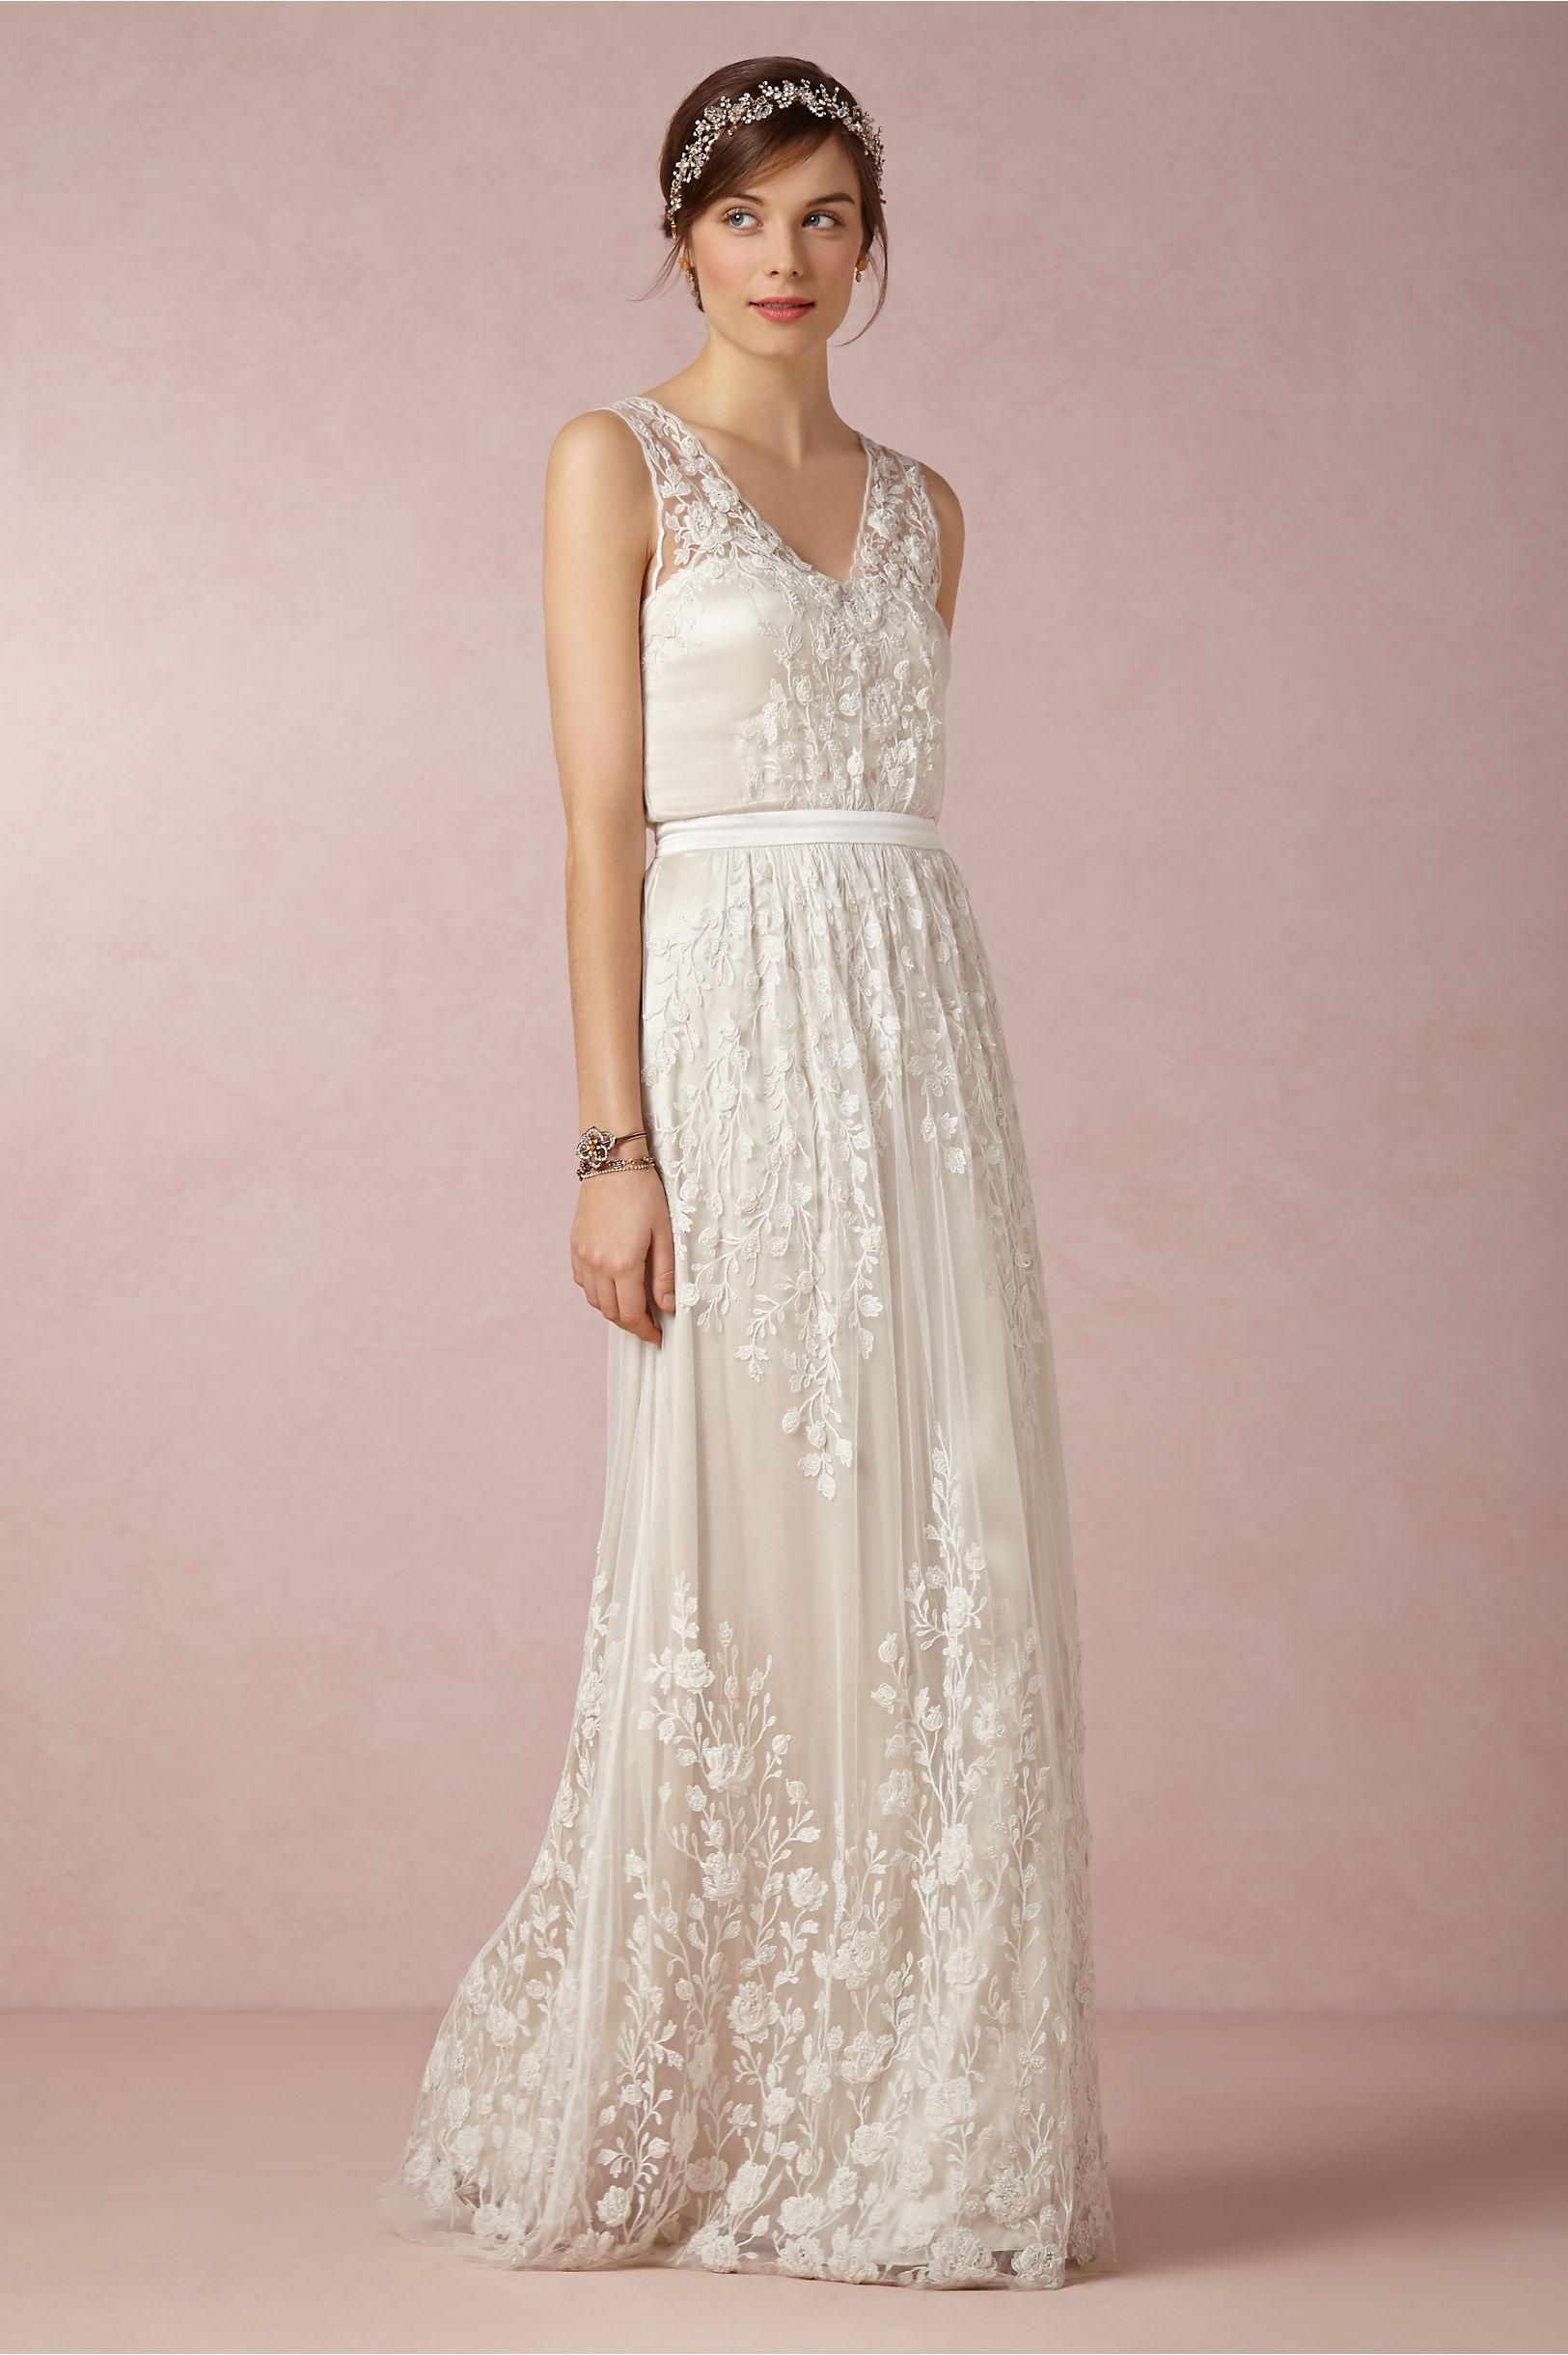 Pin by emily reed on Wedding | Pinterest | Catherine Deane, Gowns ...